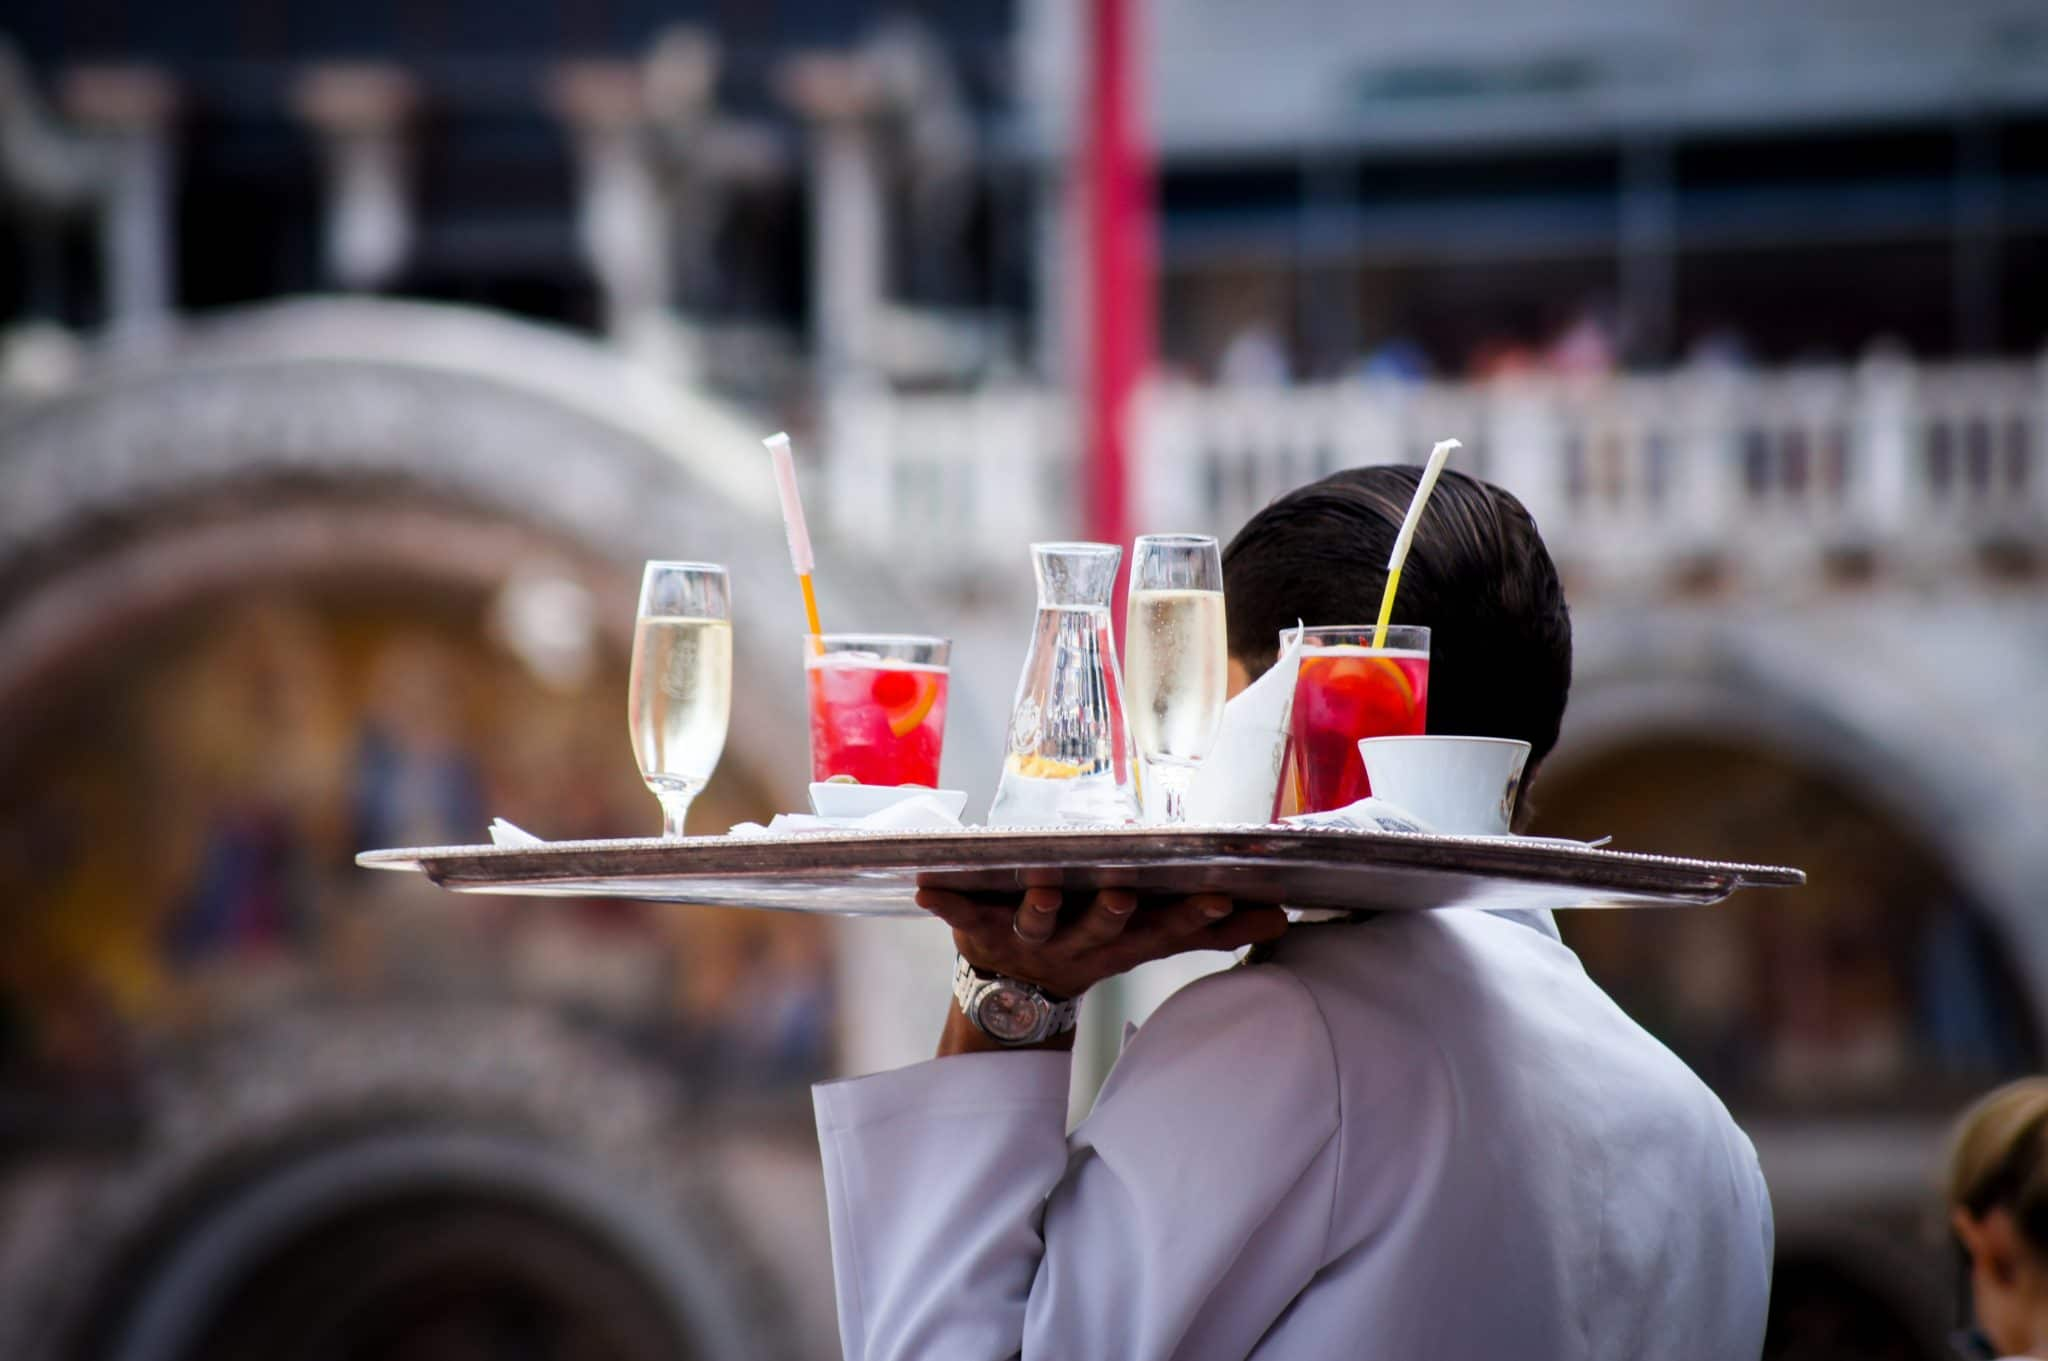 server carrying a tray of drinks